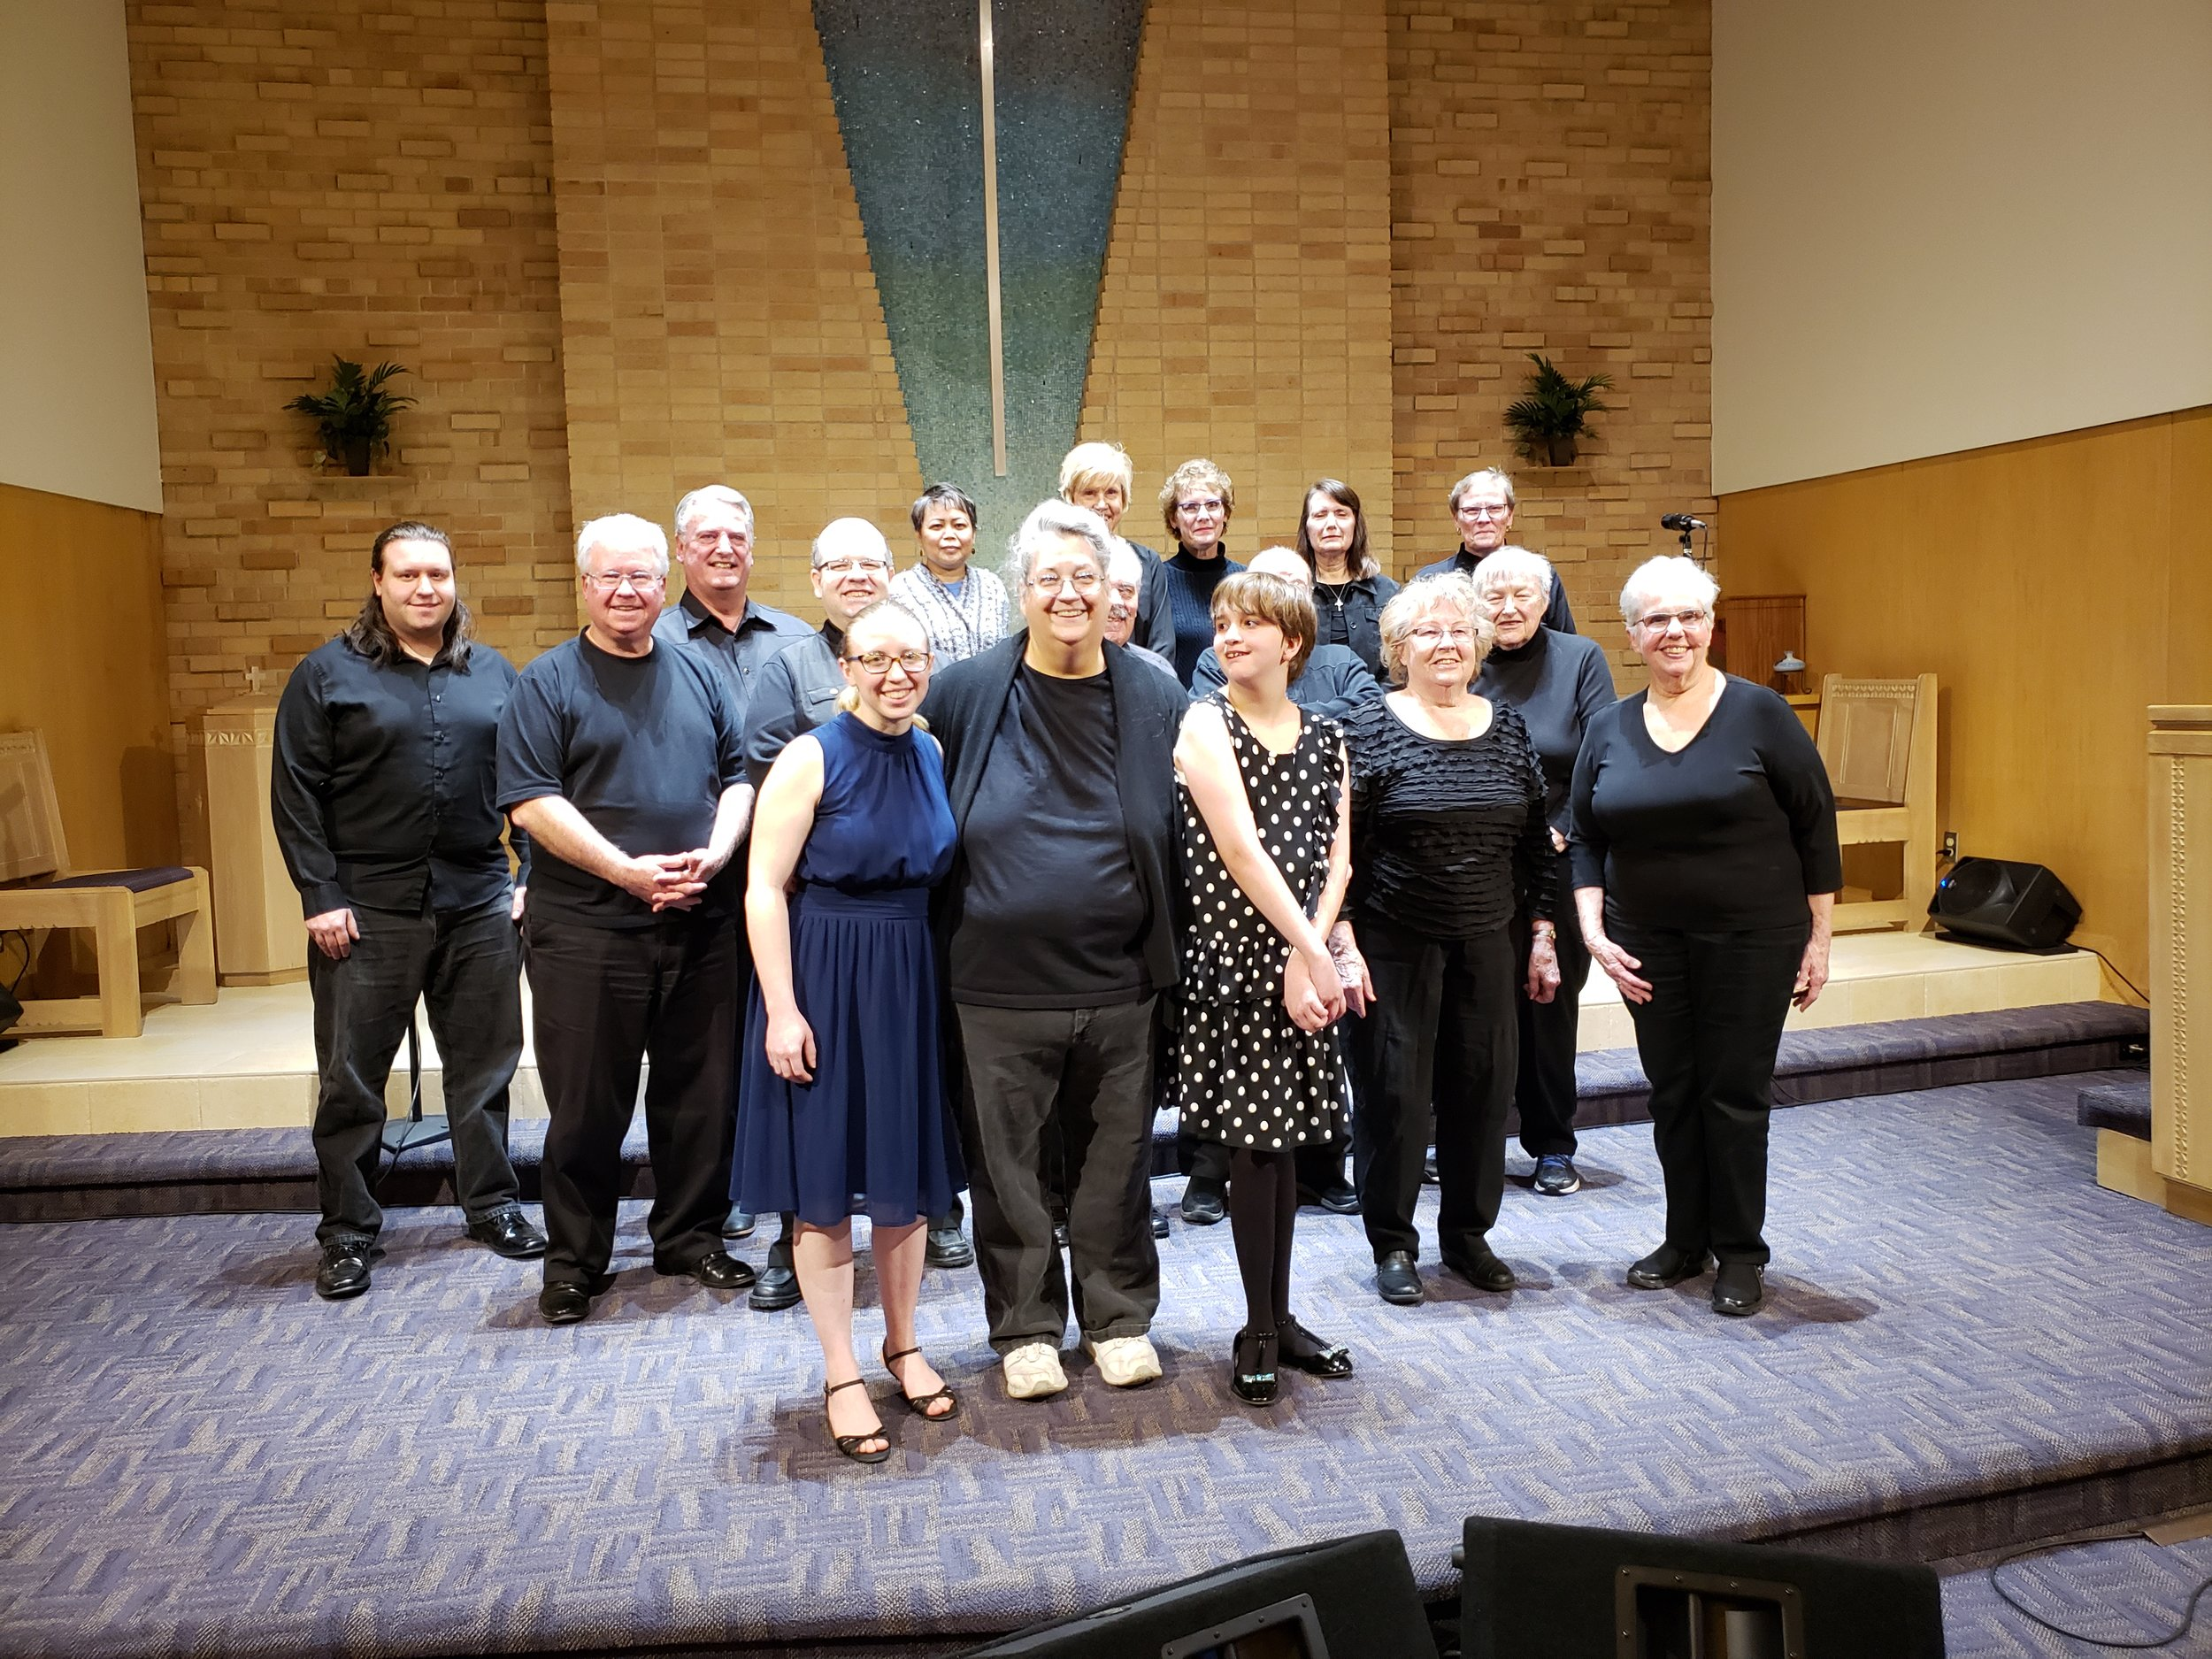 Trinity's Celebration Singers from left to right:  Back Row: Mikey, Lou, Lisa, Naomi, Lori, Jan, and Mindy Middle Row: Mike, Chris, Jim, Don, and Judy Front Row: Emily, Kathryn, and Michaela